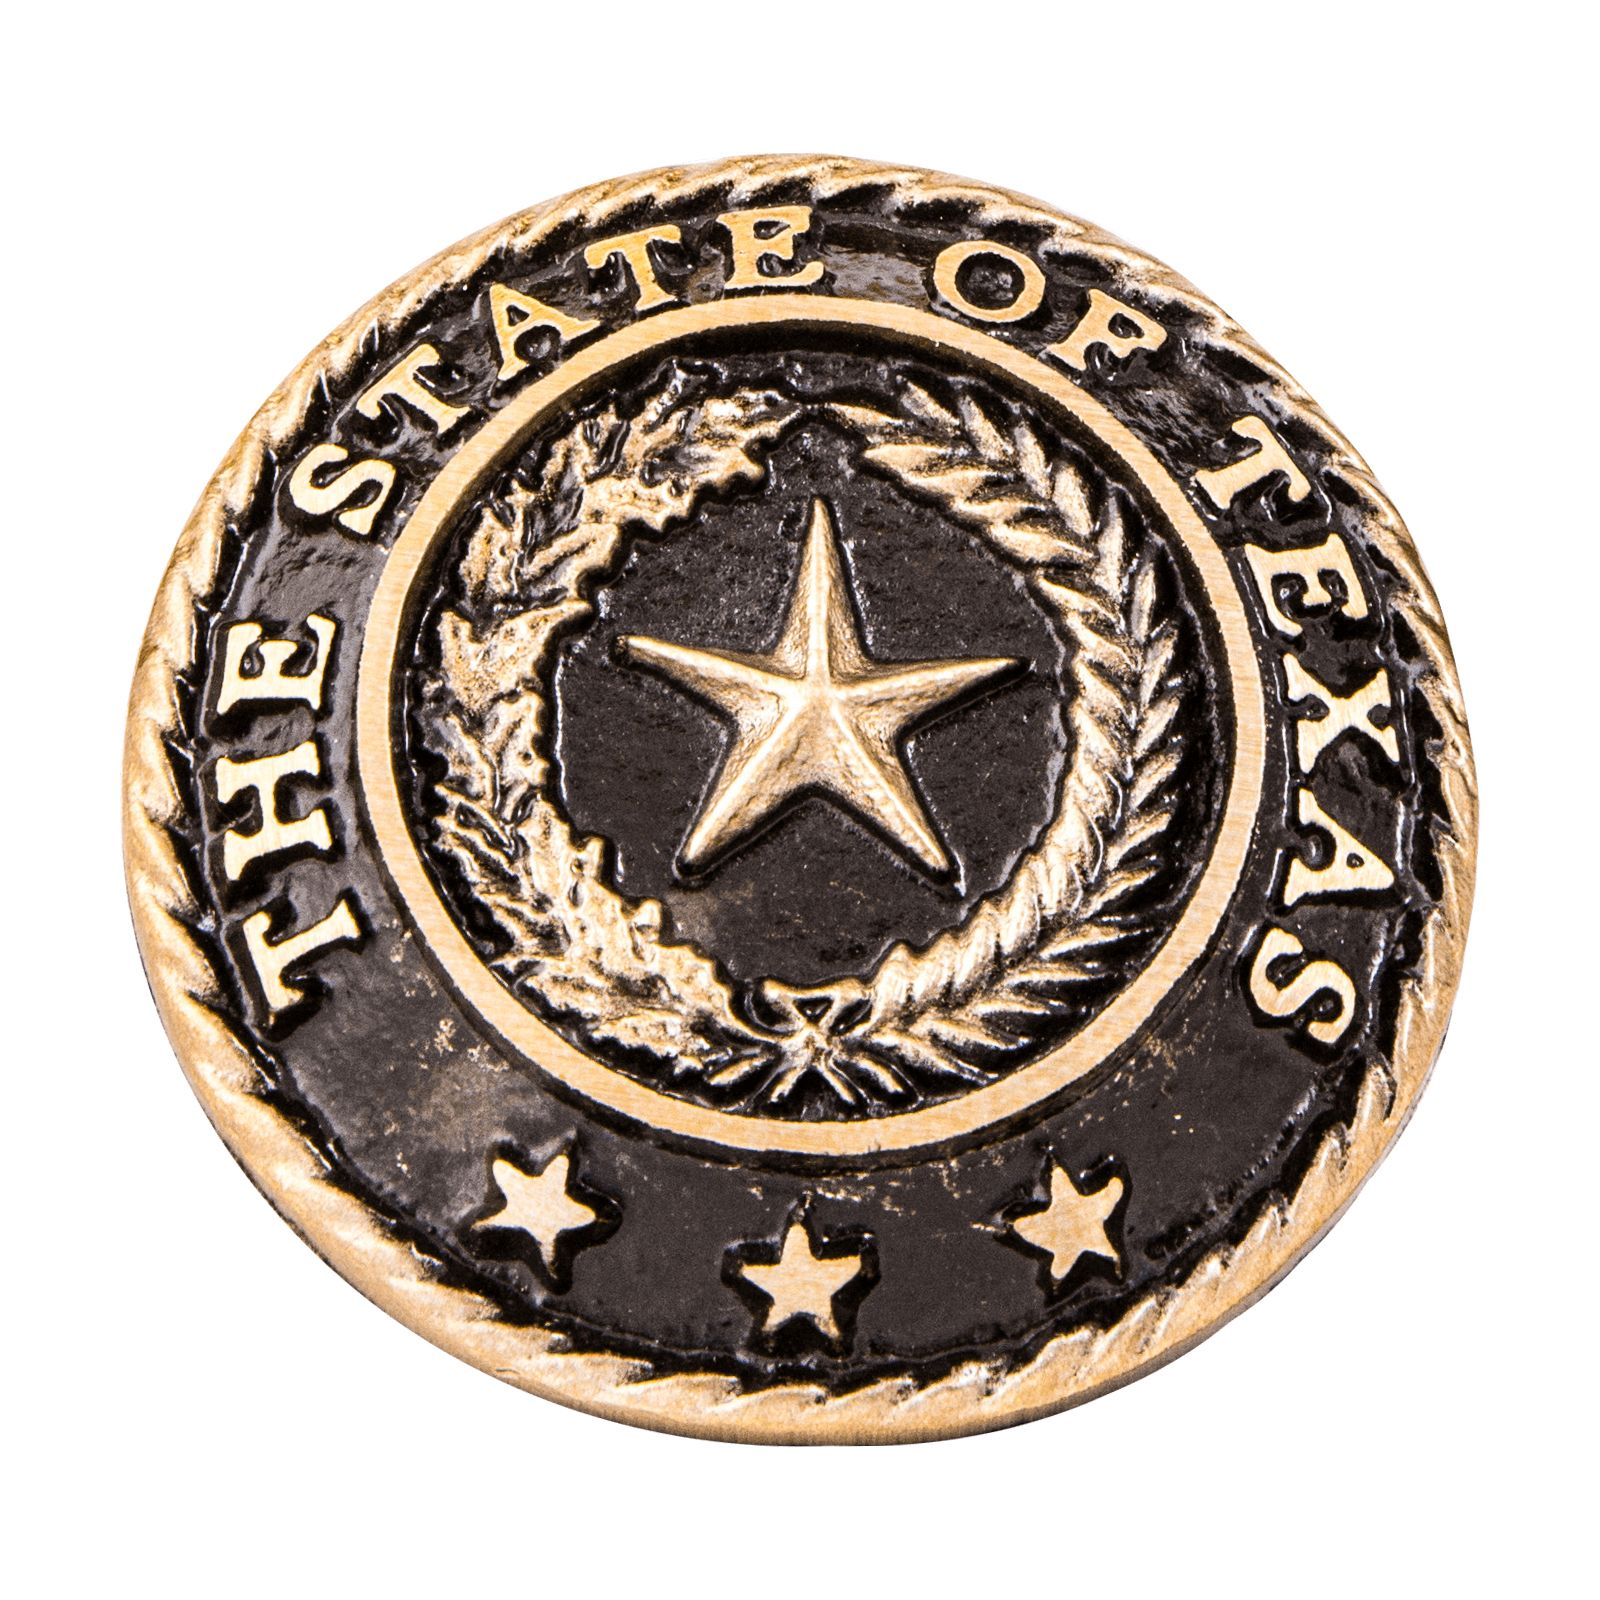 Texas State Seal Bronze Paperweight